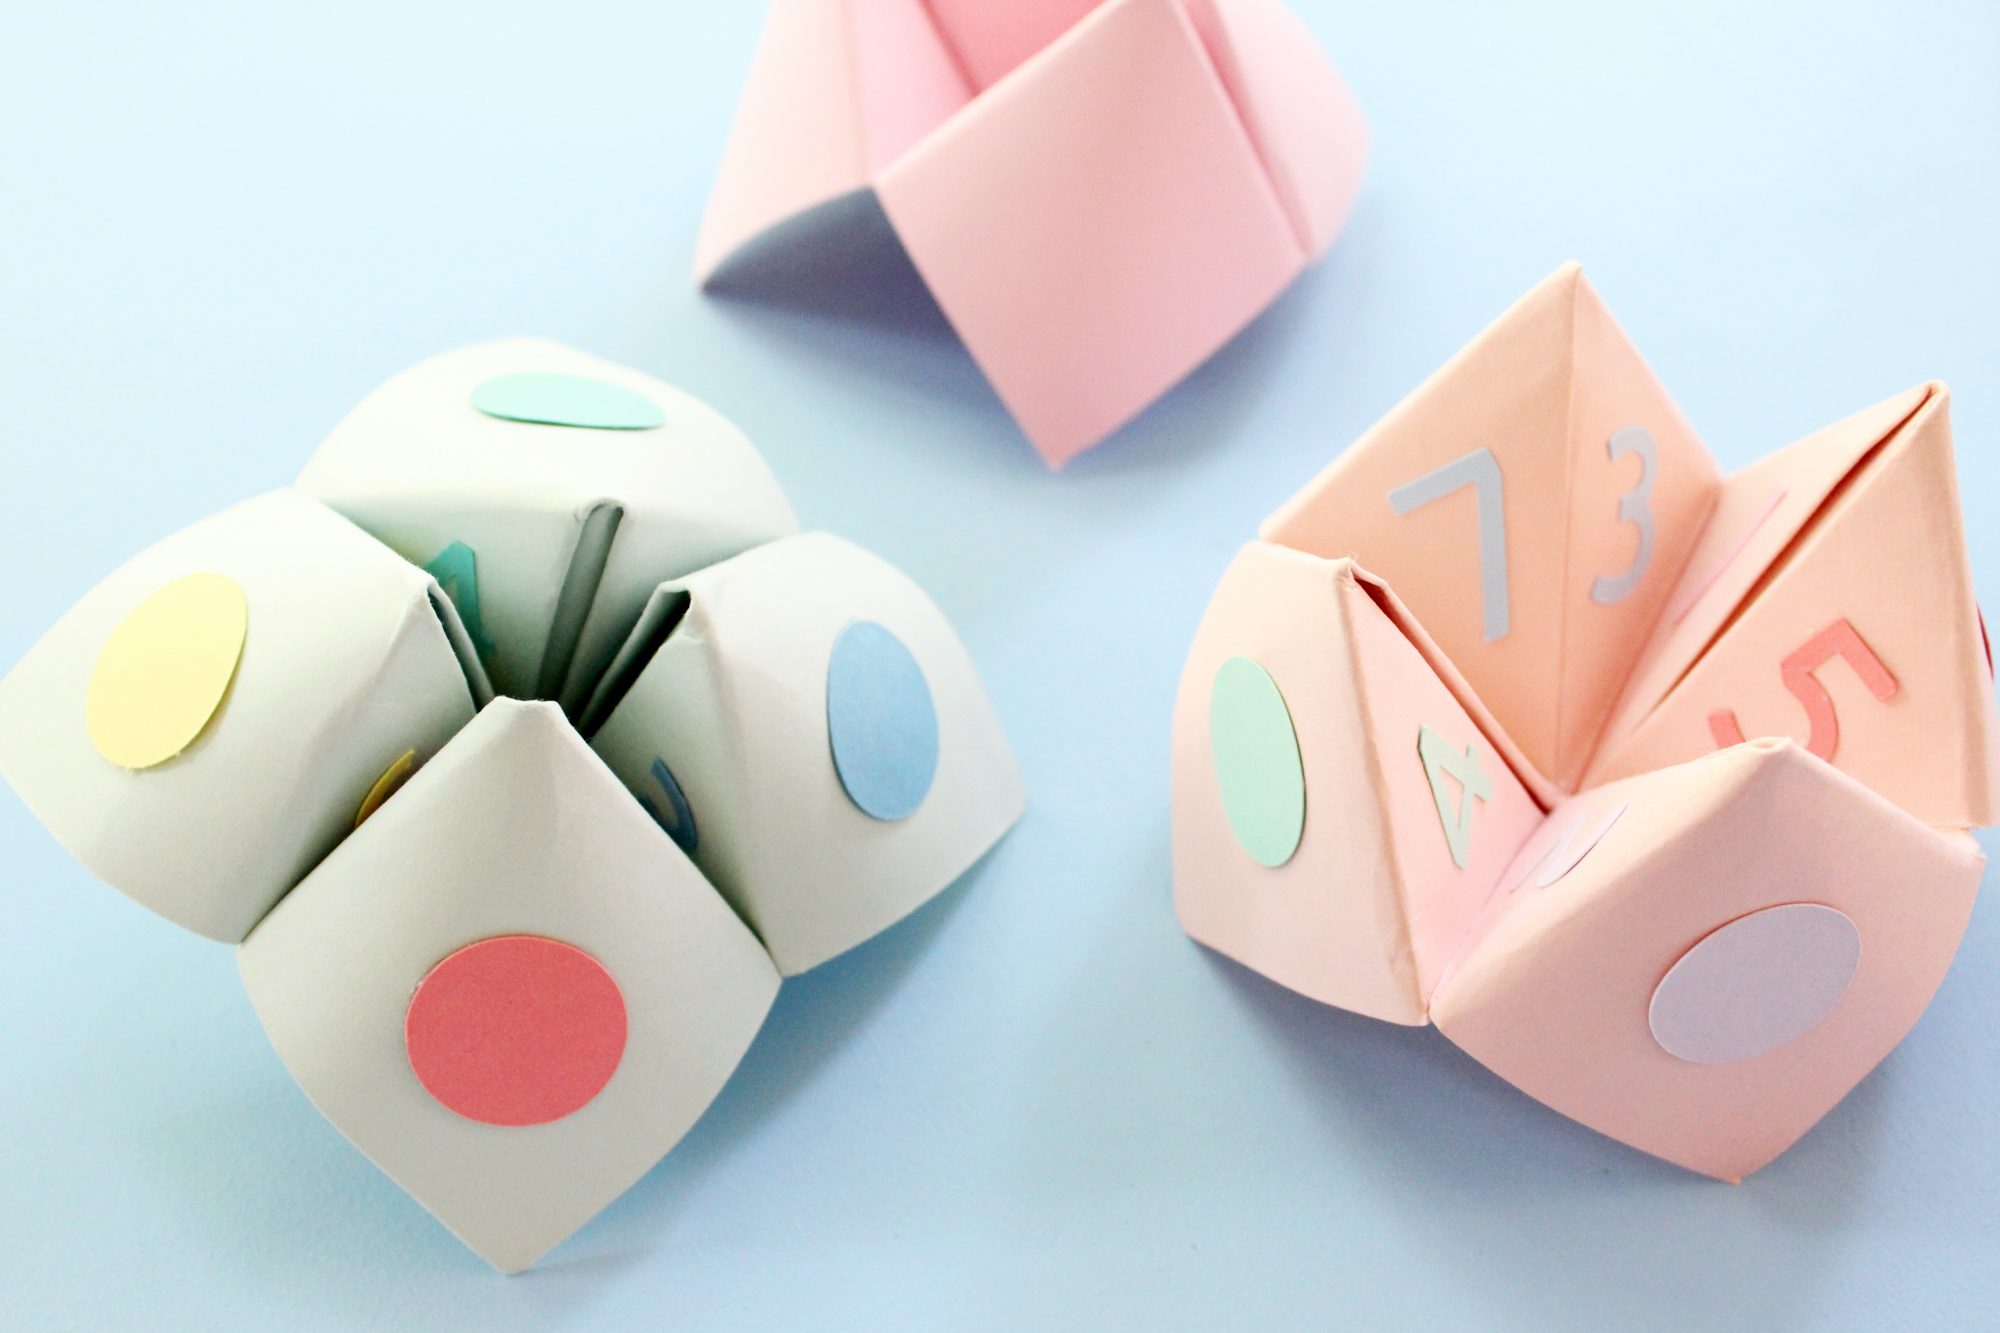 paper fortune tellers on blue surface